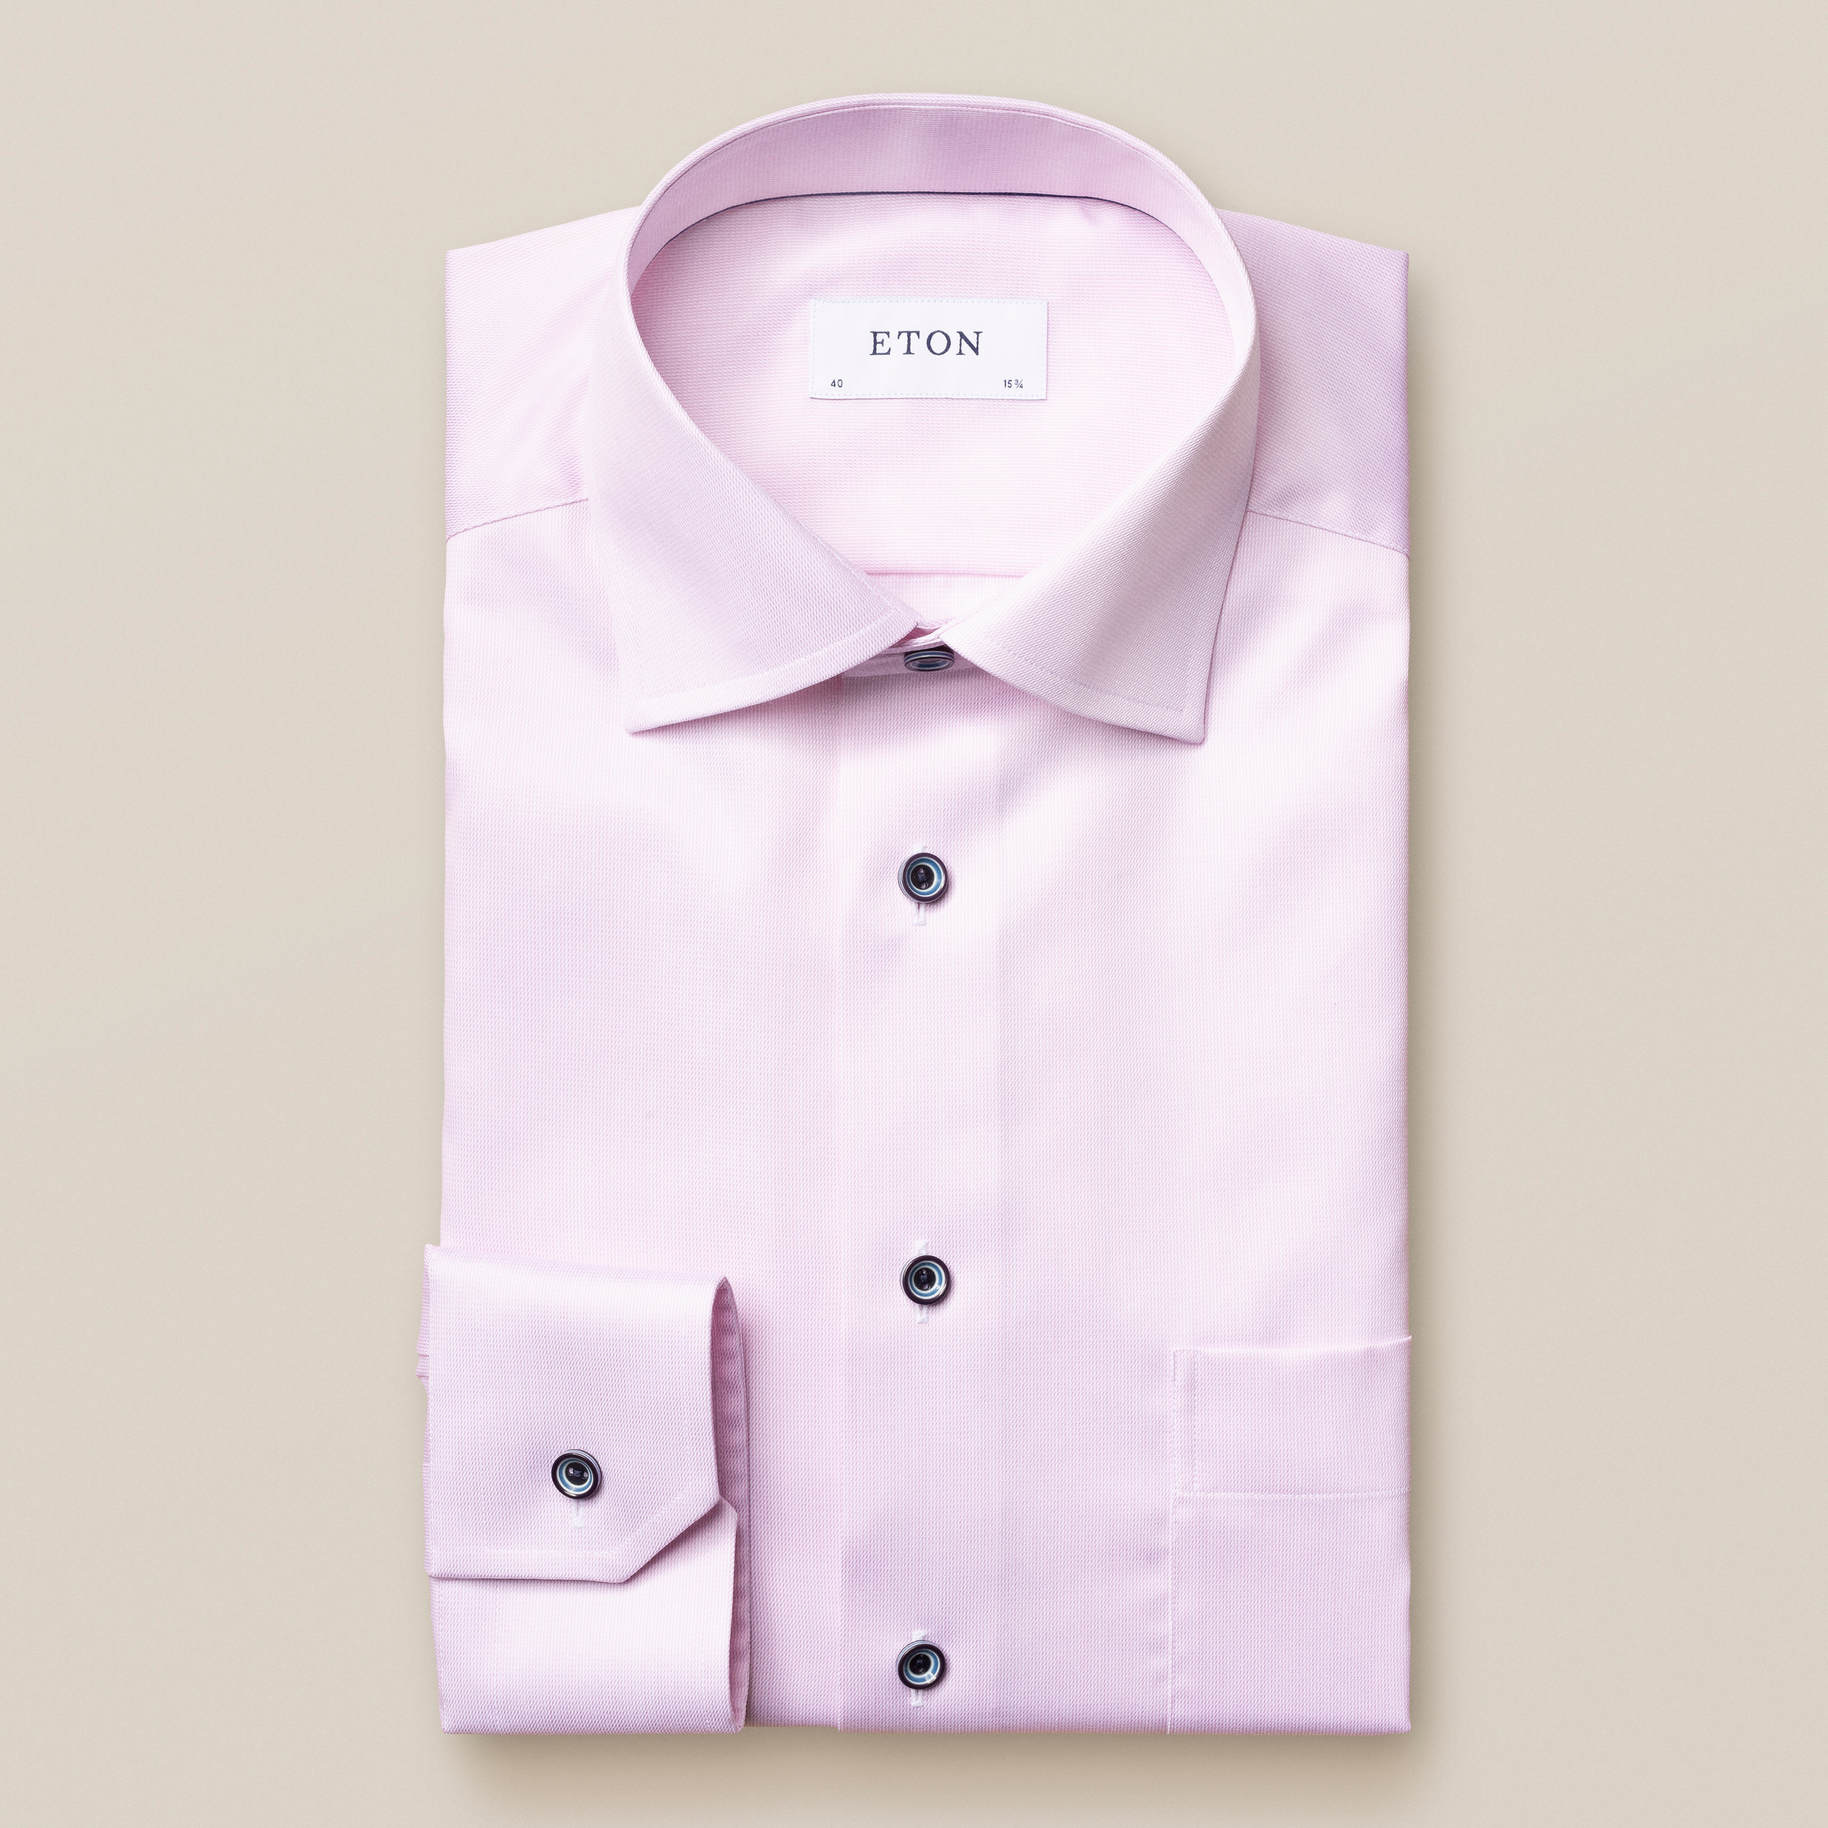 Eton Signature twill with contrast button - Slim